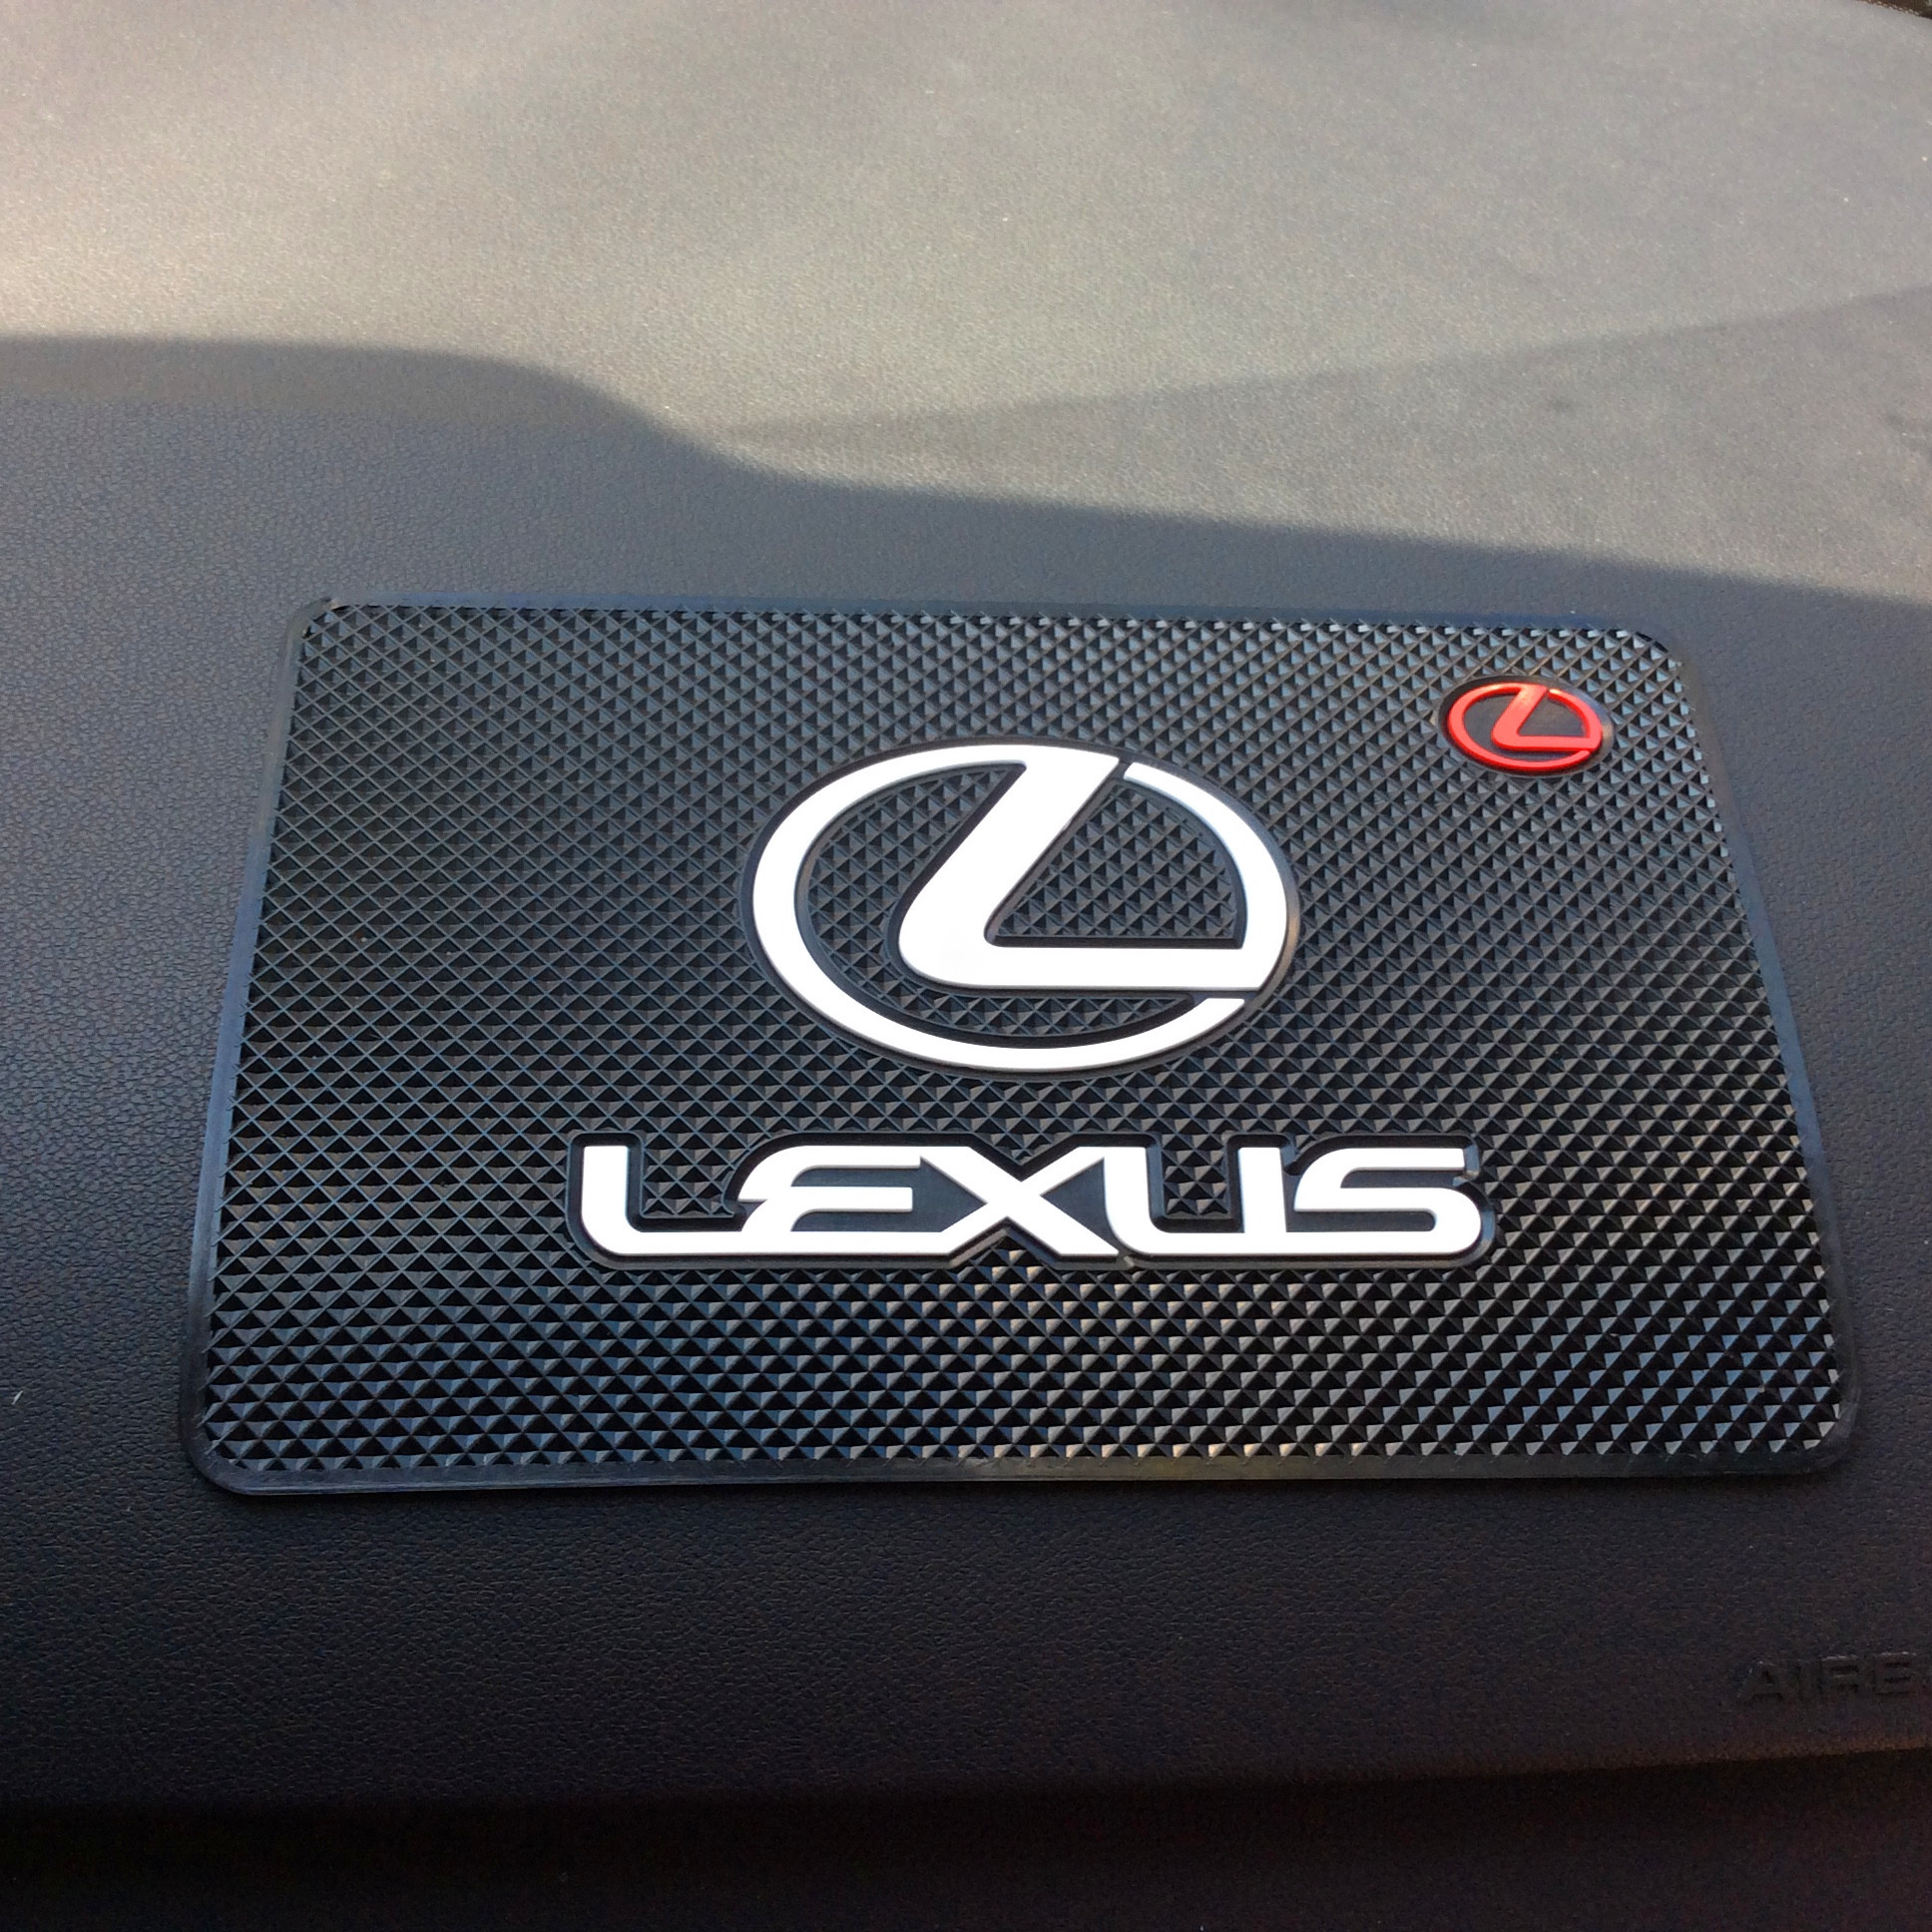 new <font><b>Car</b></font>-Styling <font><b>Car</b></font> <font><b>mat</b></font> Emblems Case For <font><b>Lexus</b></font> RX300 RX450 <font><b>IS200</b></font> IS250 IS300 GS300 Auto <font><b>Car</b></font> Styling image